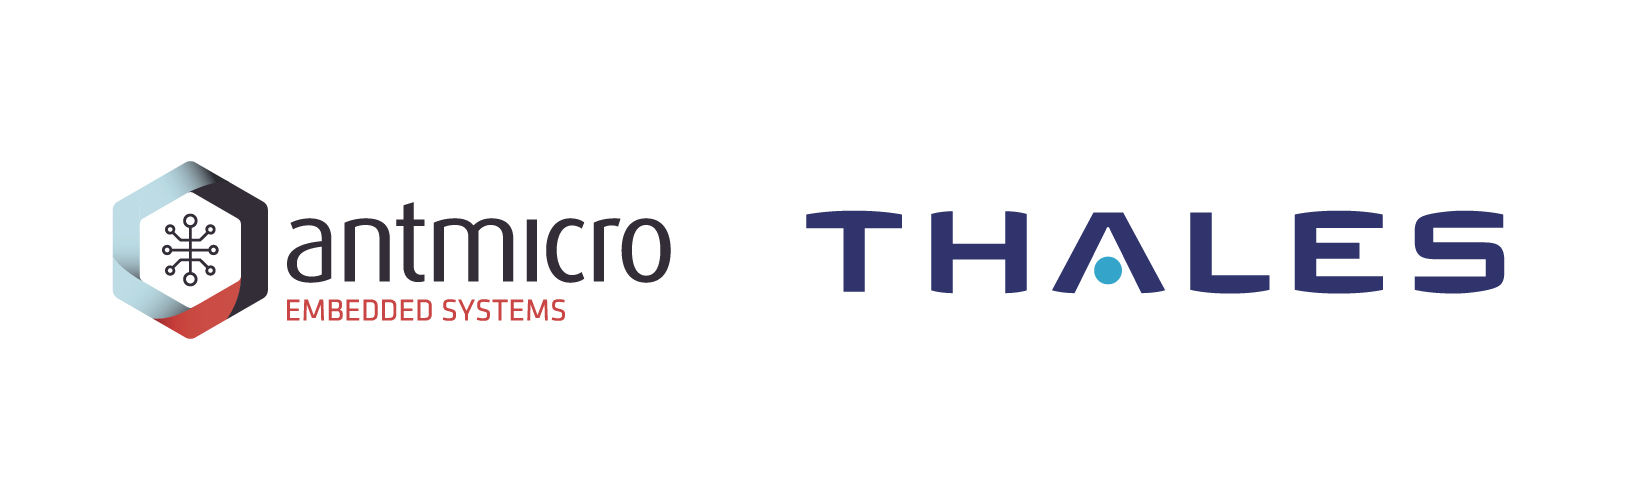 Partnership with Thales